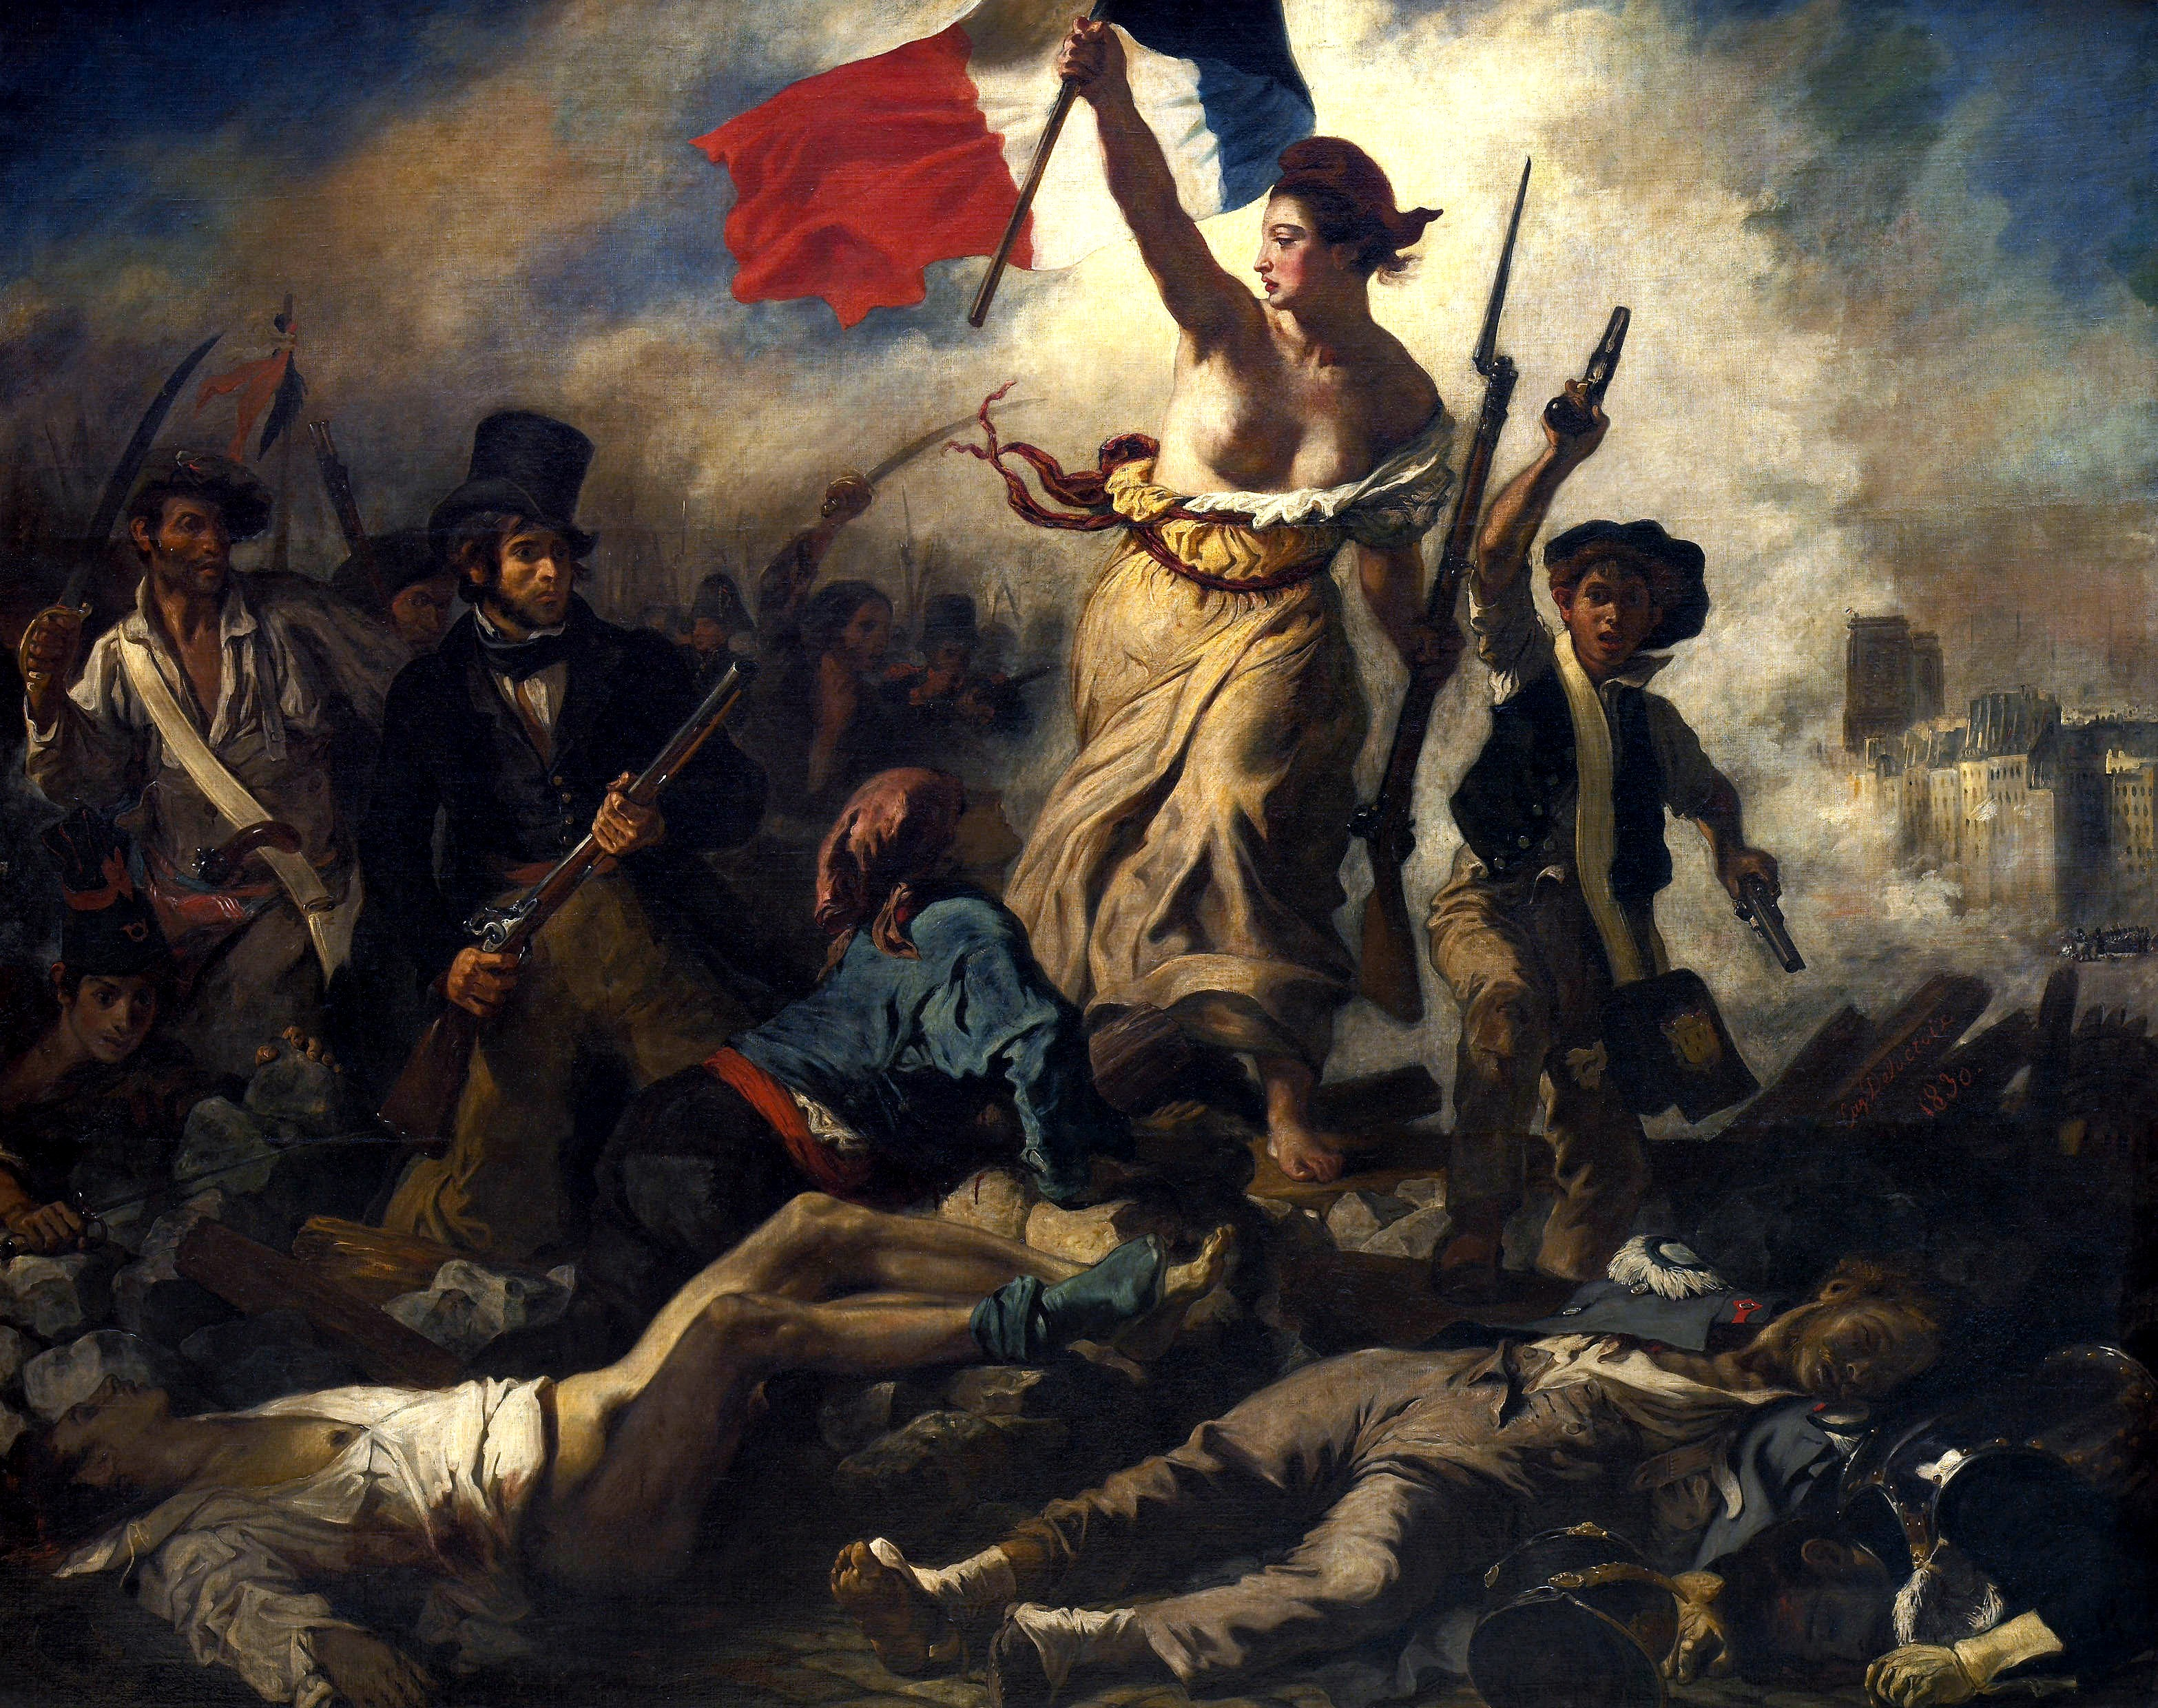 to what extent did the american revolution influence the french revolution essay - the start of the french revolution was due to a build-up of inequalities, bankruptcy, and the influence of the enlightenment and the american revolution the first and second estates, which was made up of the rich nobles, did not have to pay taxes, and had special privileges.